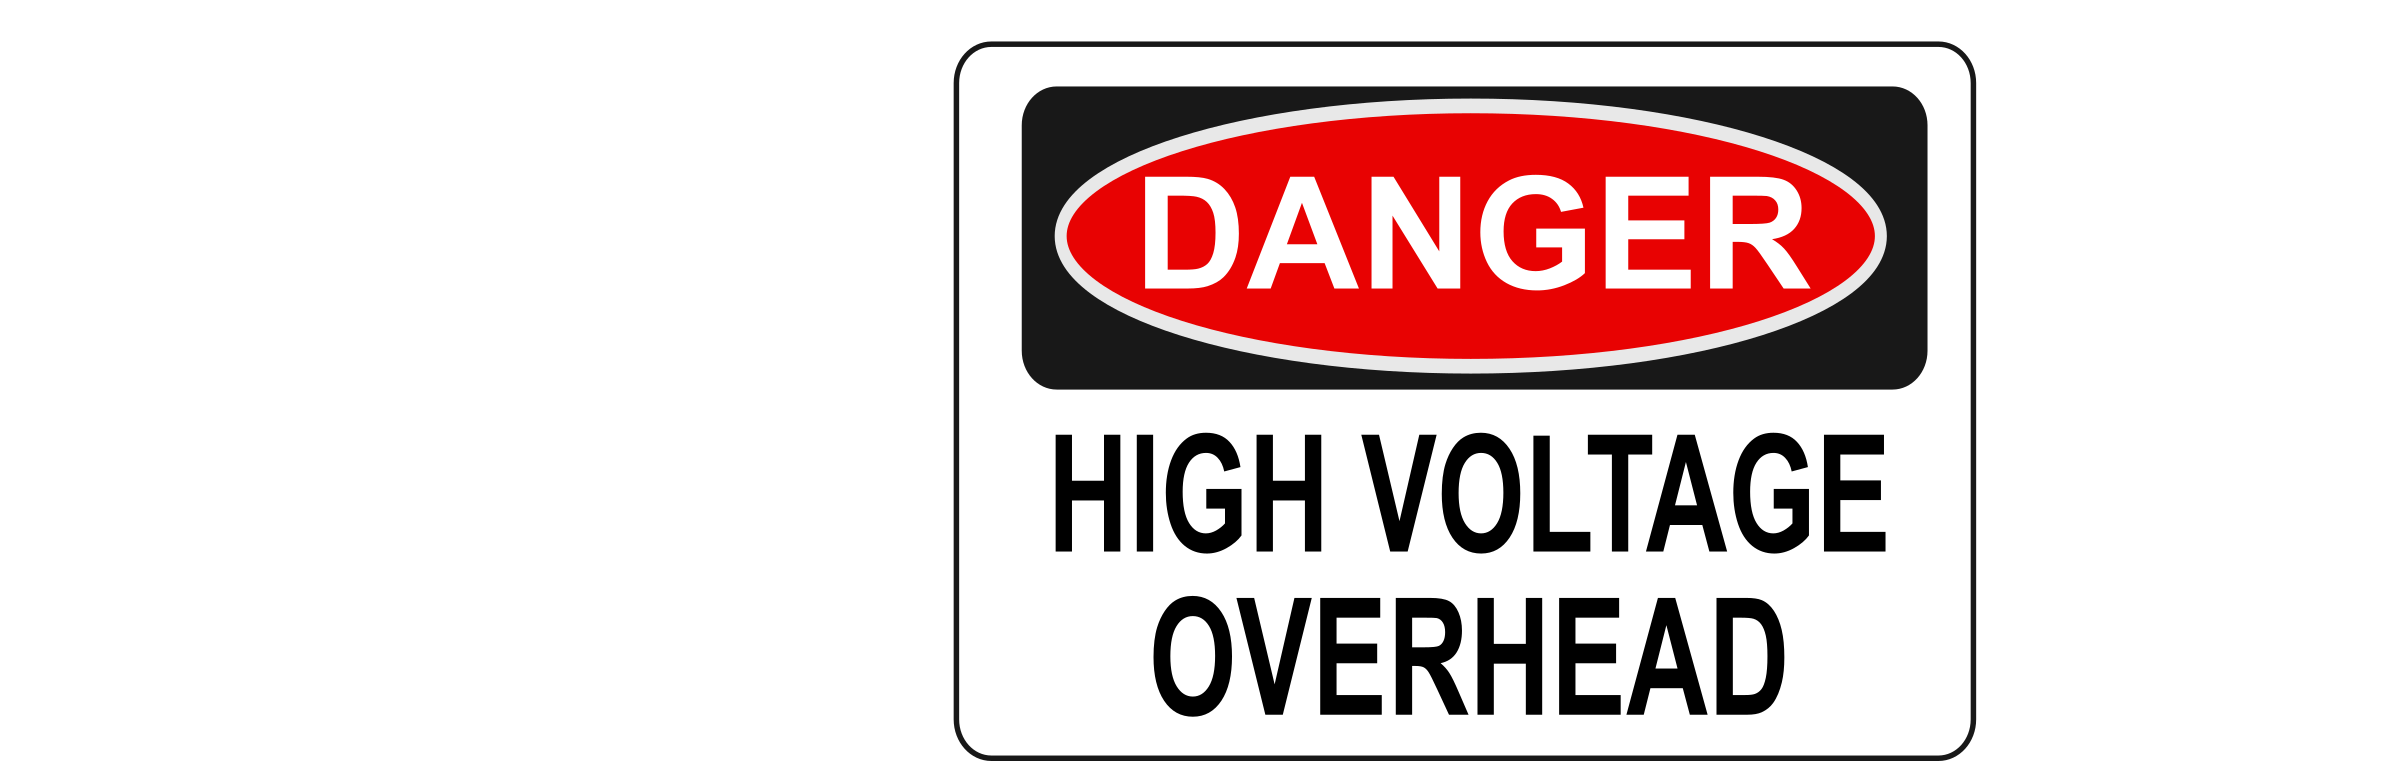 Danger - High Voltage Overhead by Rfc1394